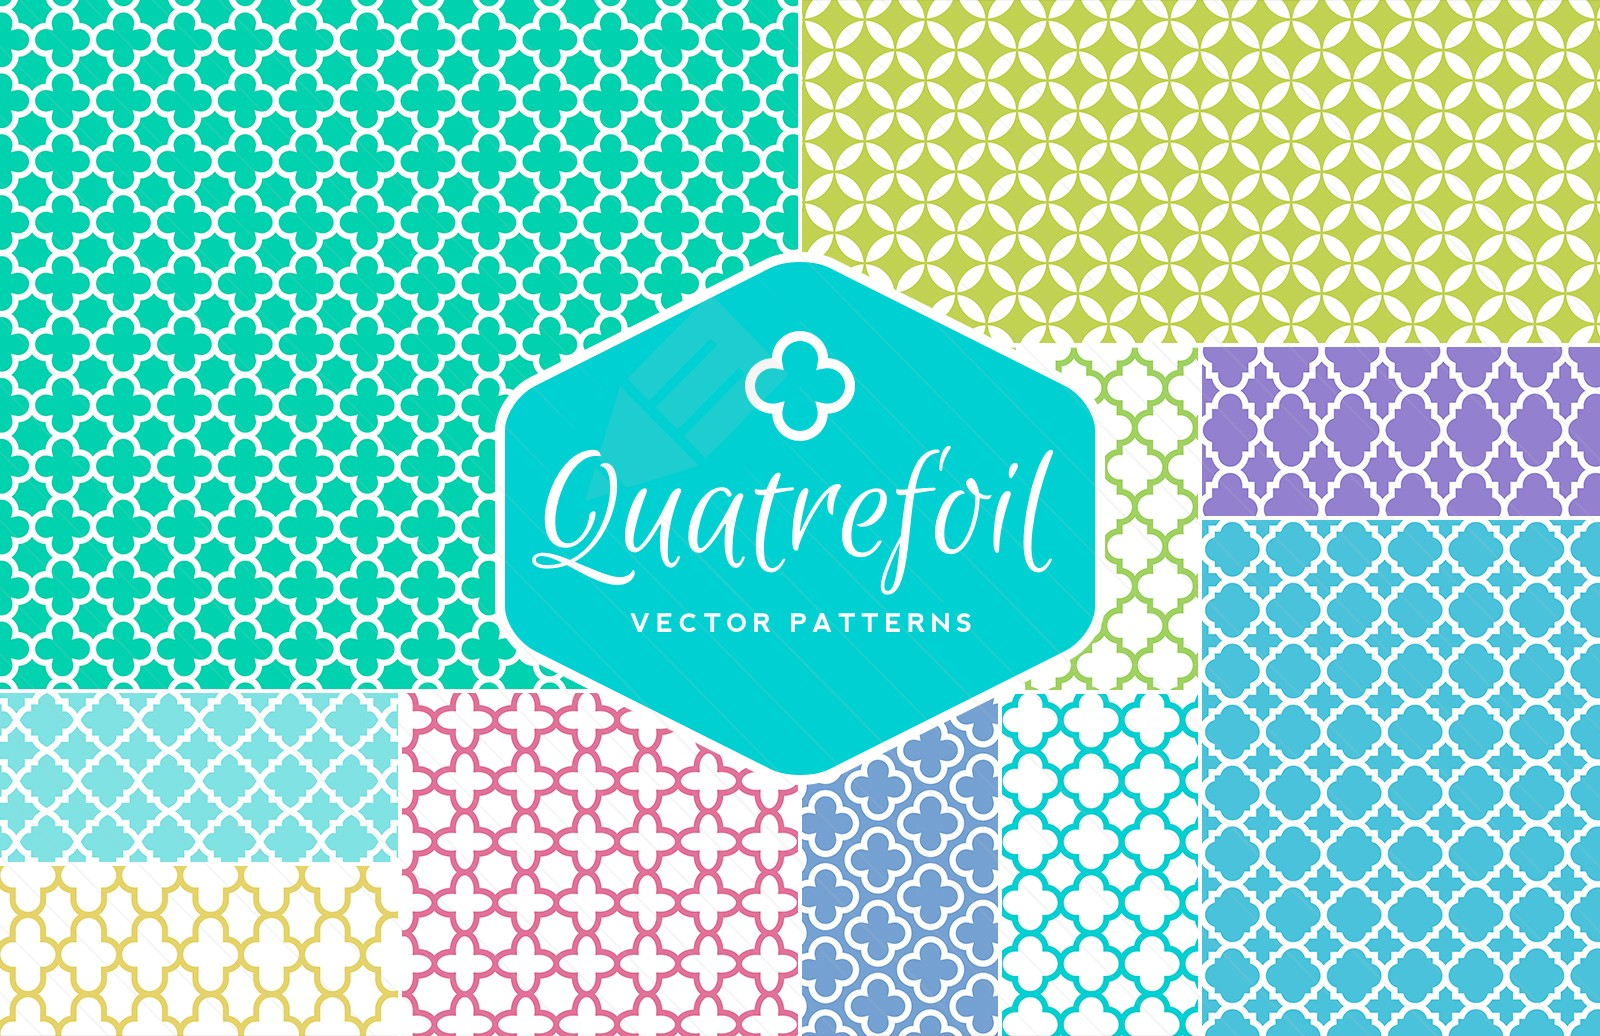 Commercial Use Quatrefoil Vector Patterns